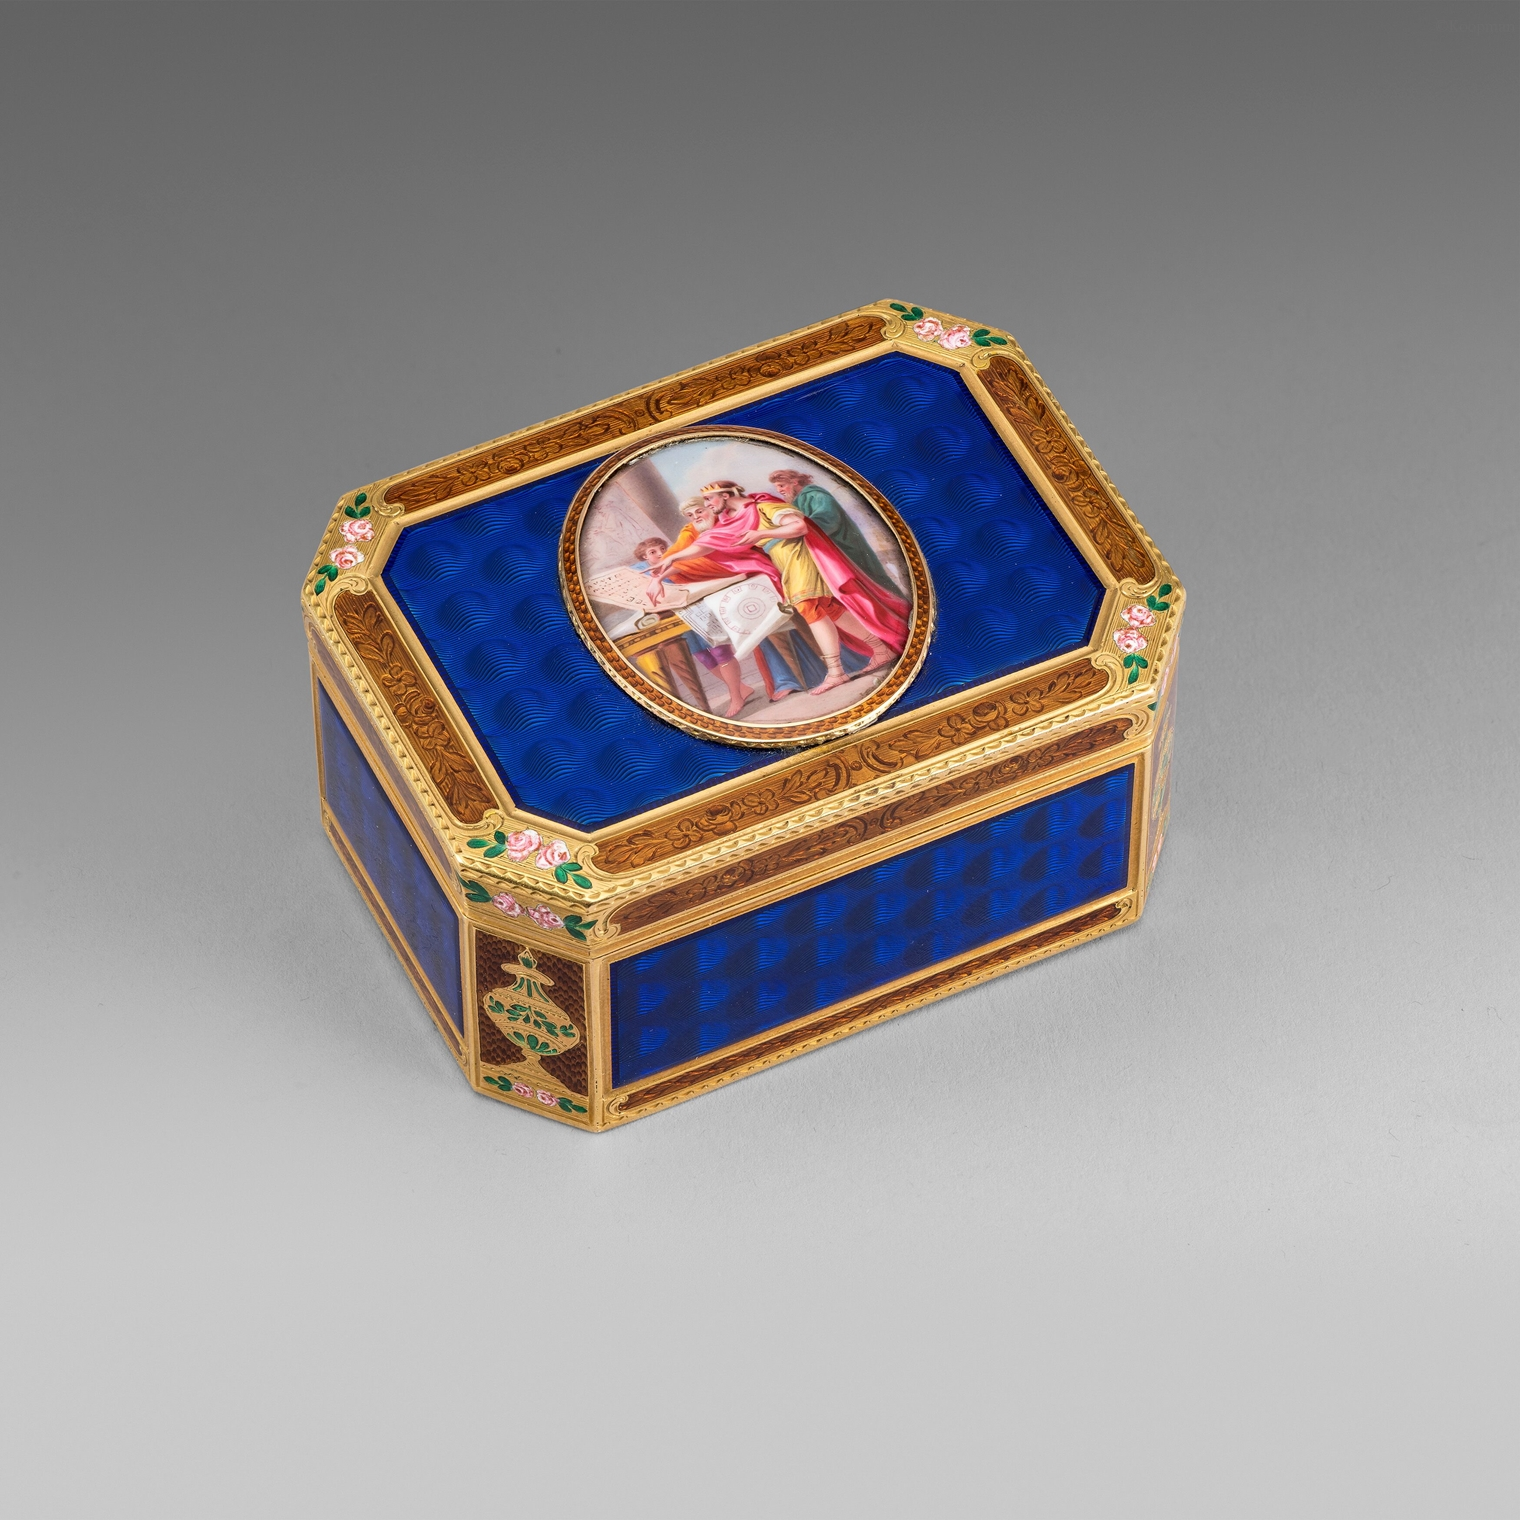 A German Gold & Enamel Box